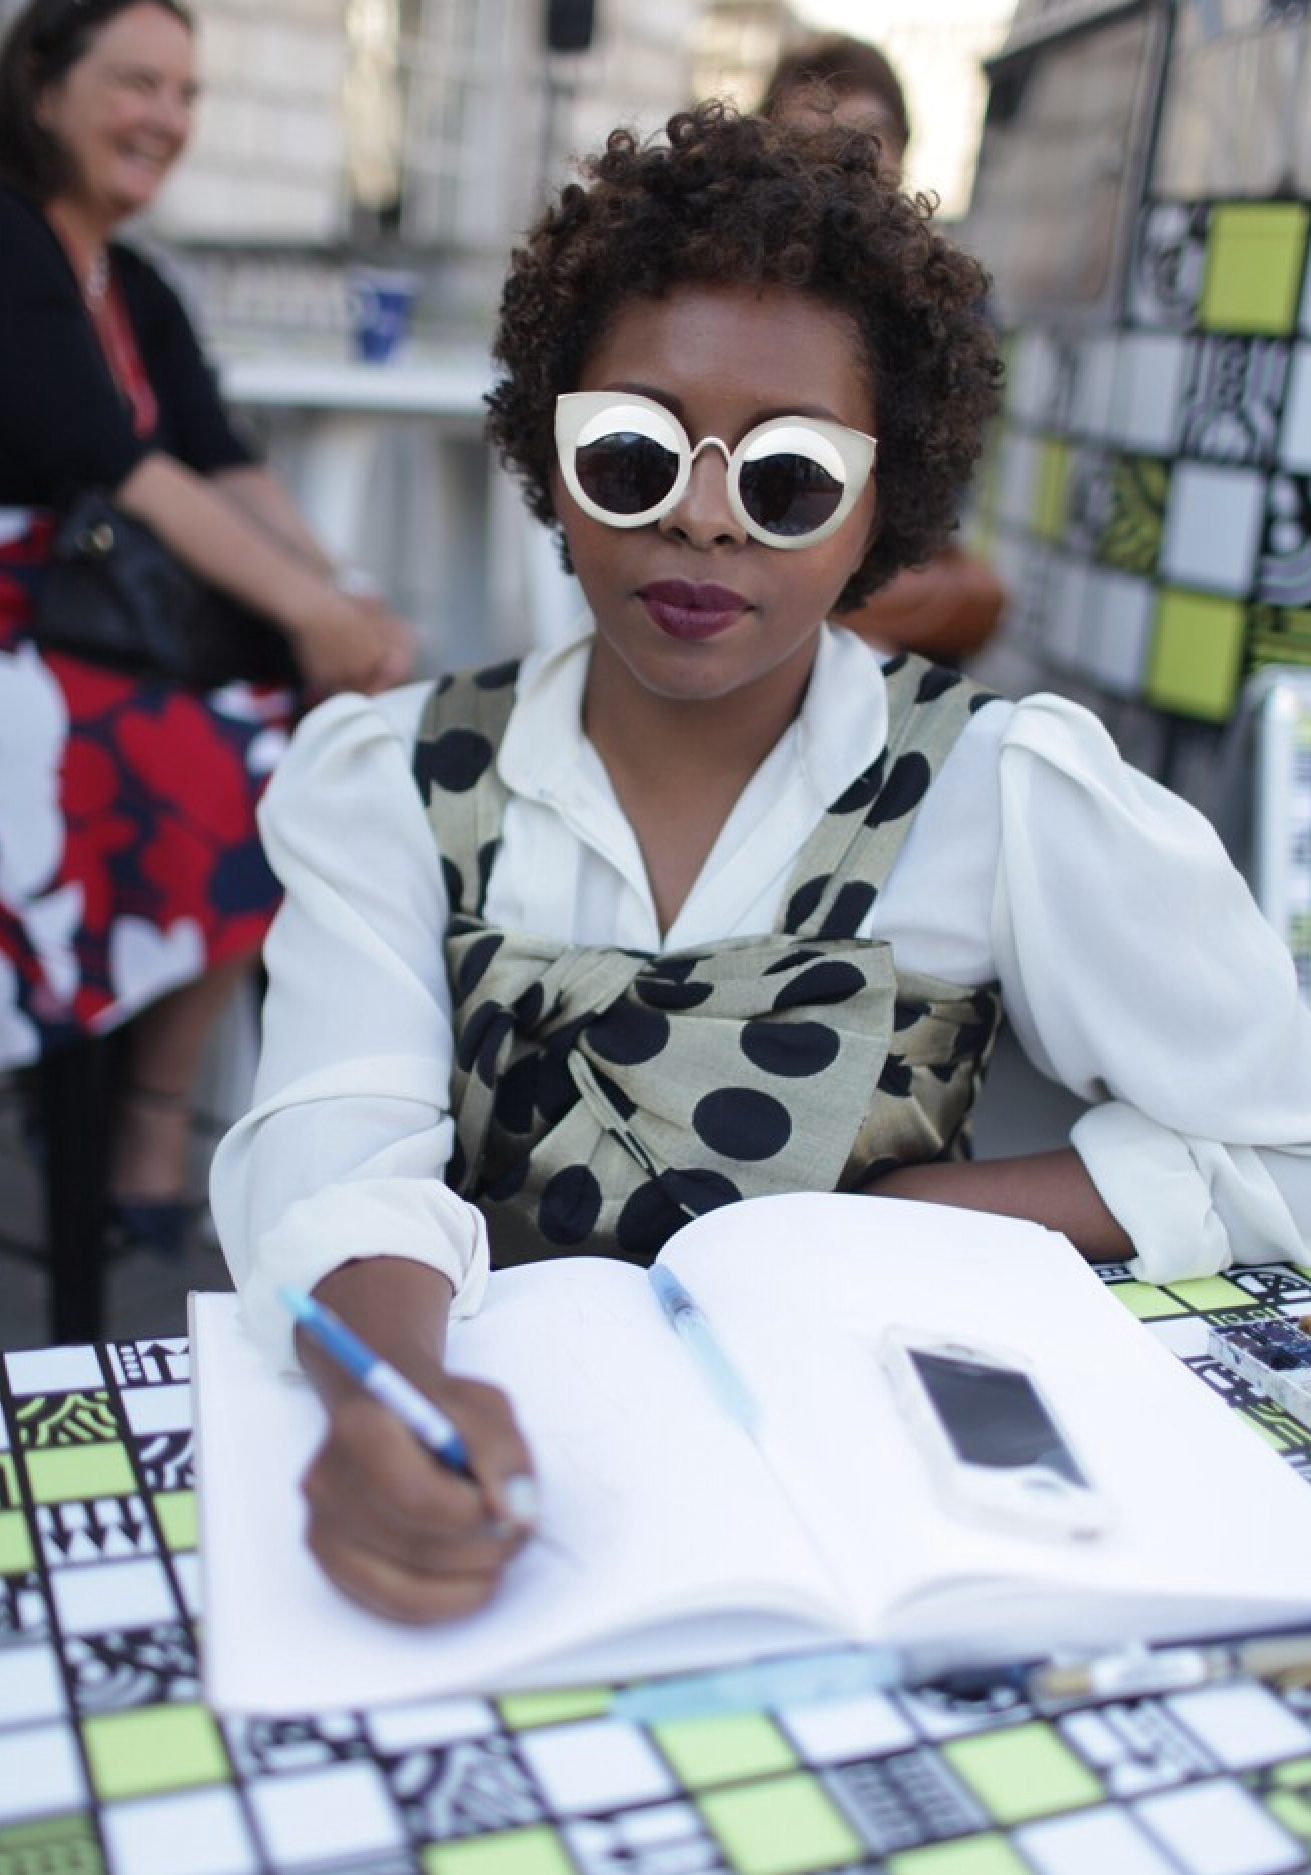 A fashion week attendee wearing Quay sunglasses.